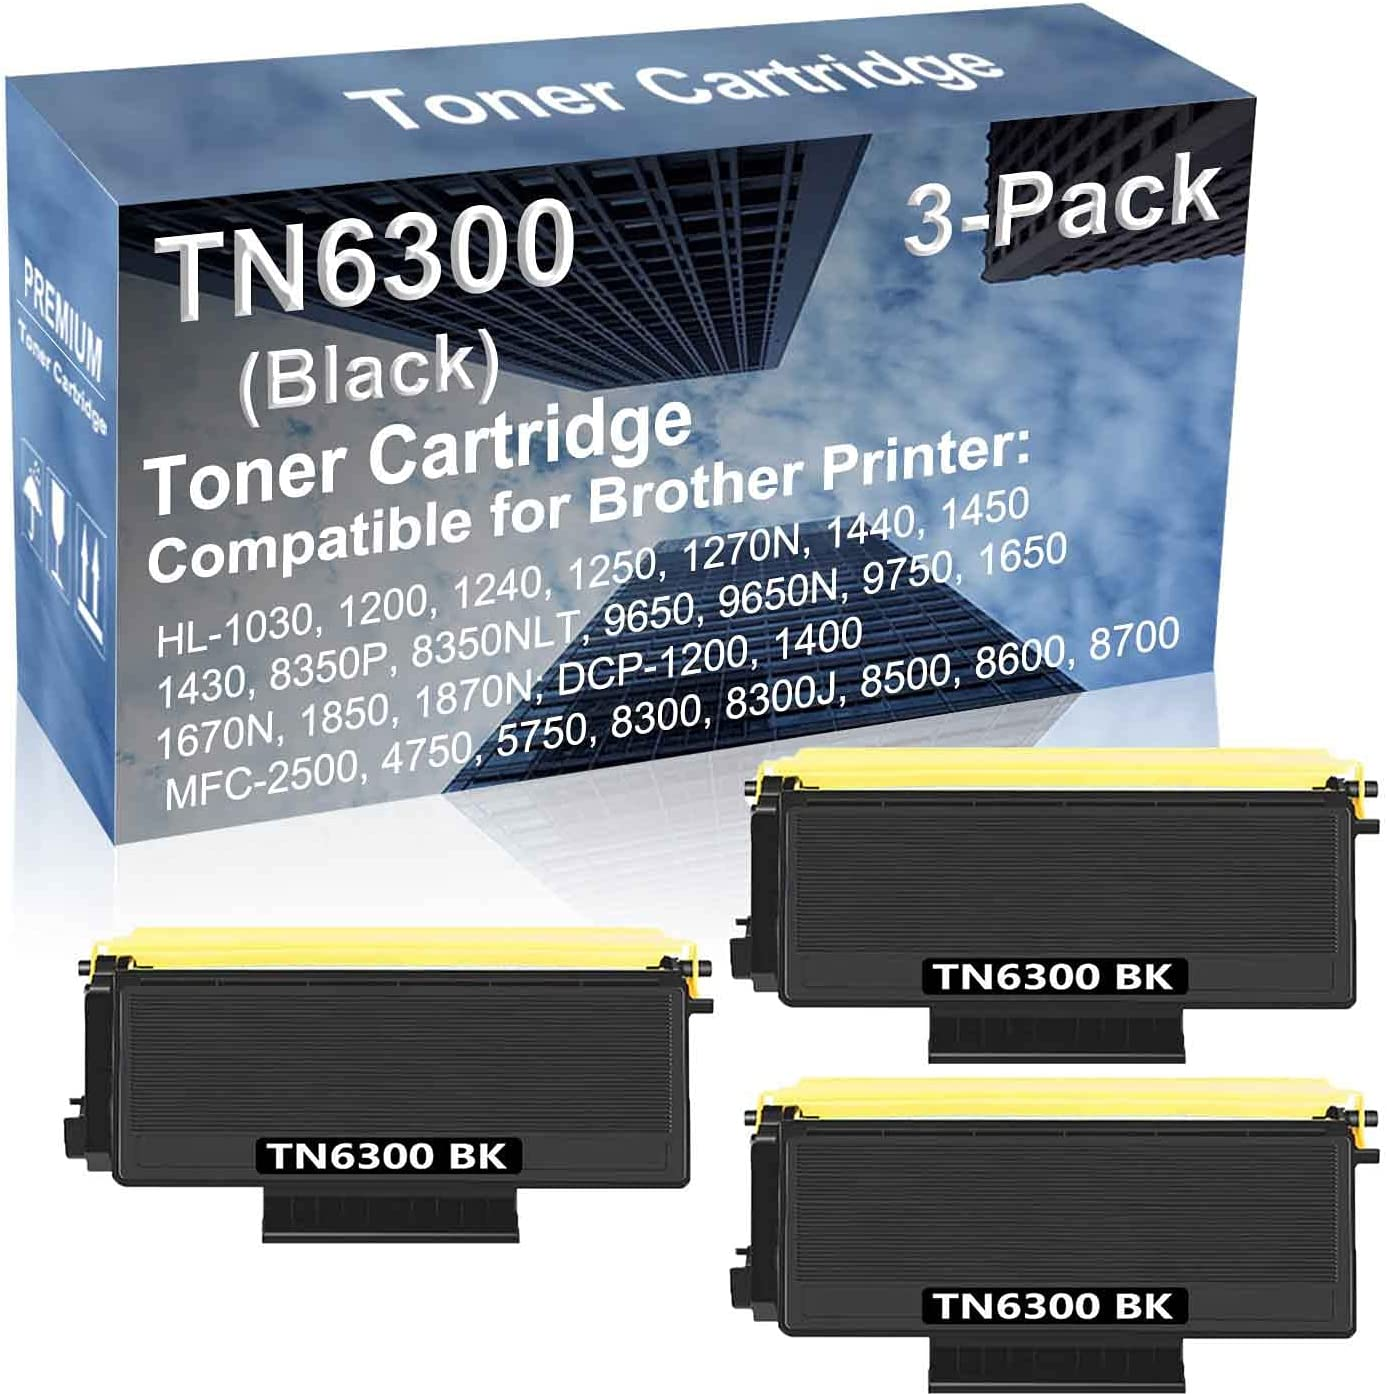 3-Pack Compatible High Yield DCP-1200, 1400; MFC-2500, 4750, 5750, 8300, 8300J, 8500, 8600, 8700 Printer Cartridge Replacement for Brother TN6300 Toner Cartridge (Black)